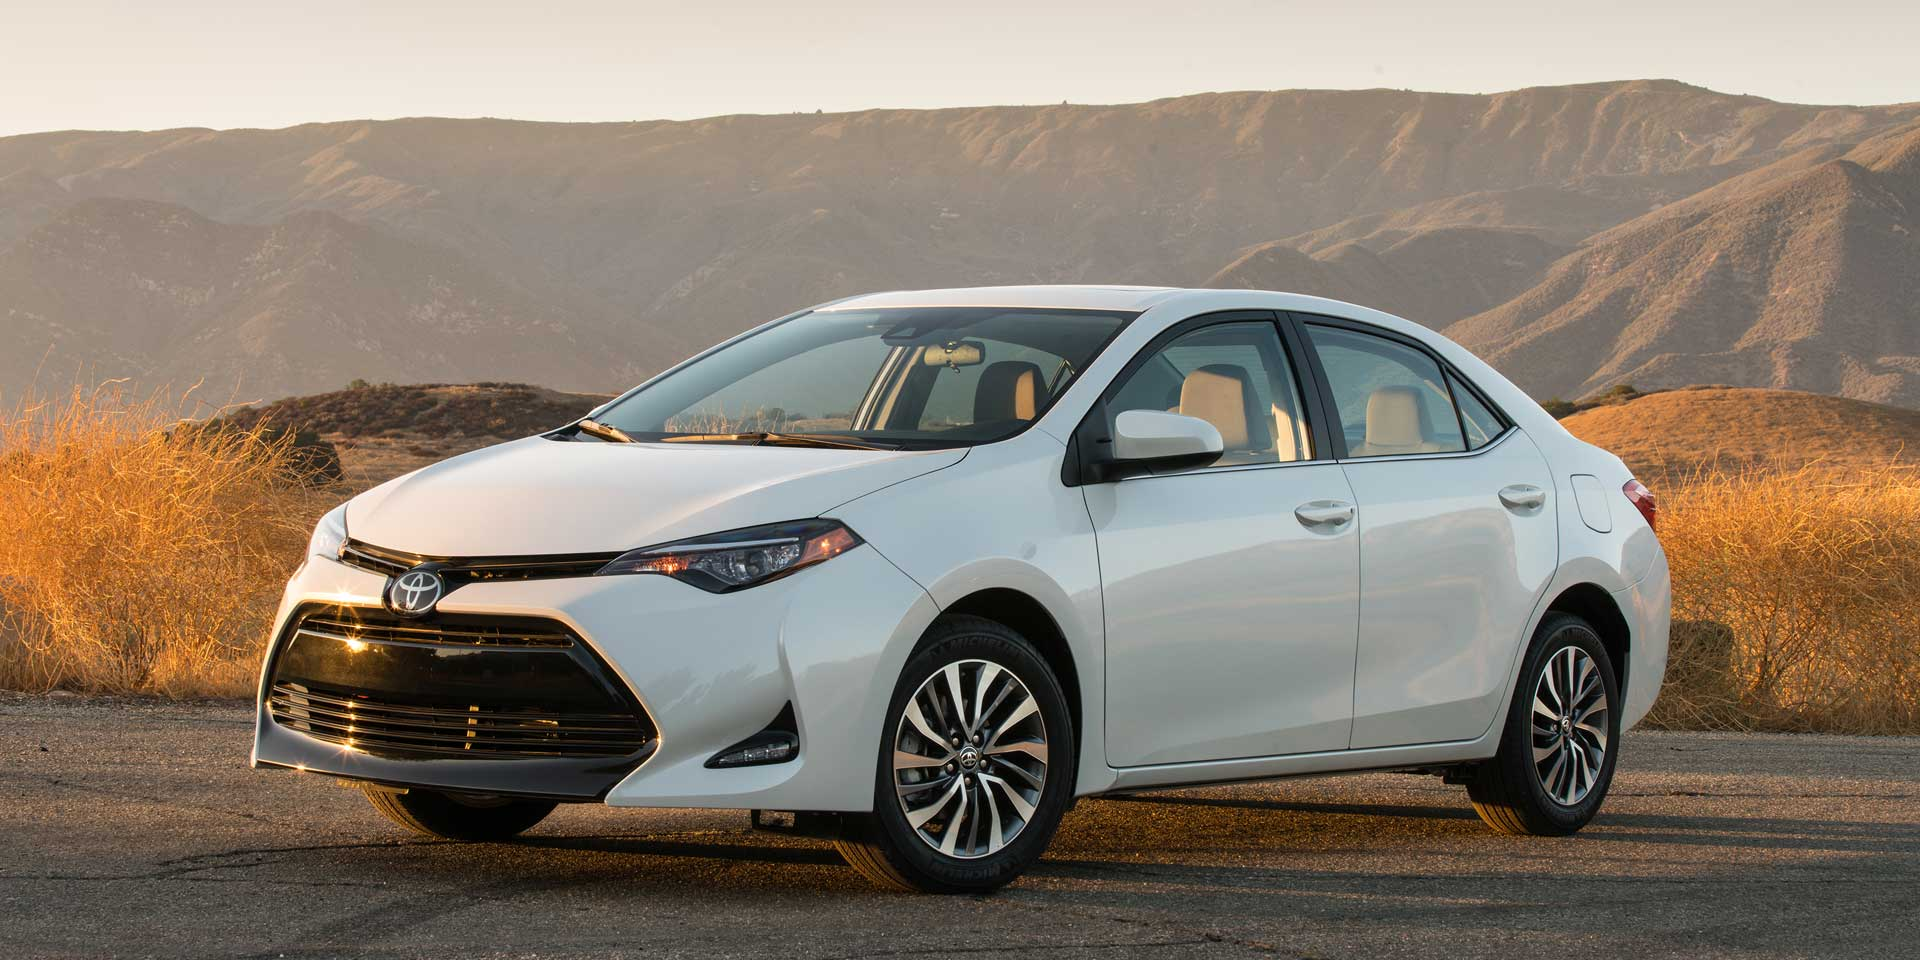 2017 Toyota Corolla The Marks Continuation Of One Longest Running Nameplates In Automotive Industry With Its 50th